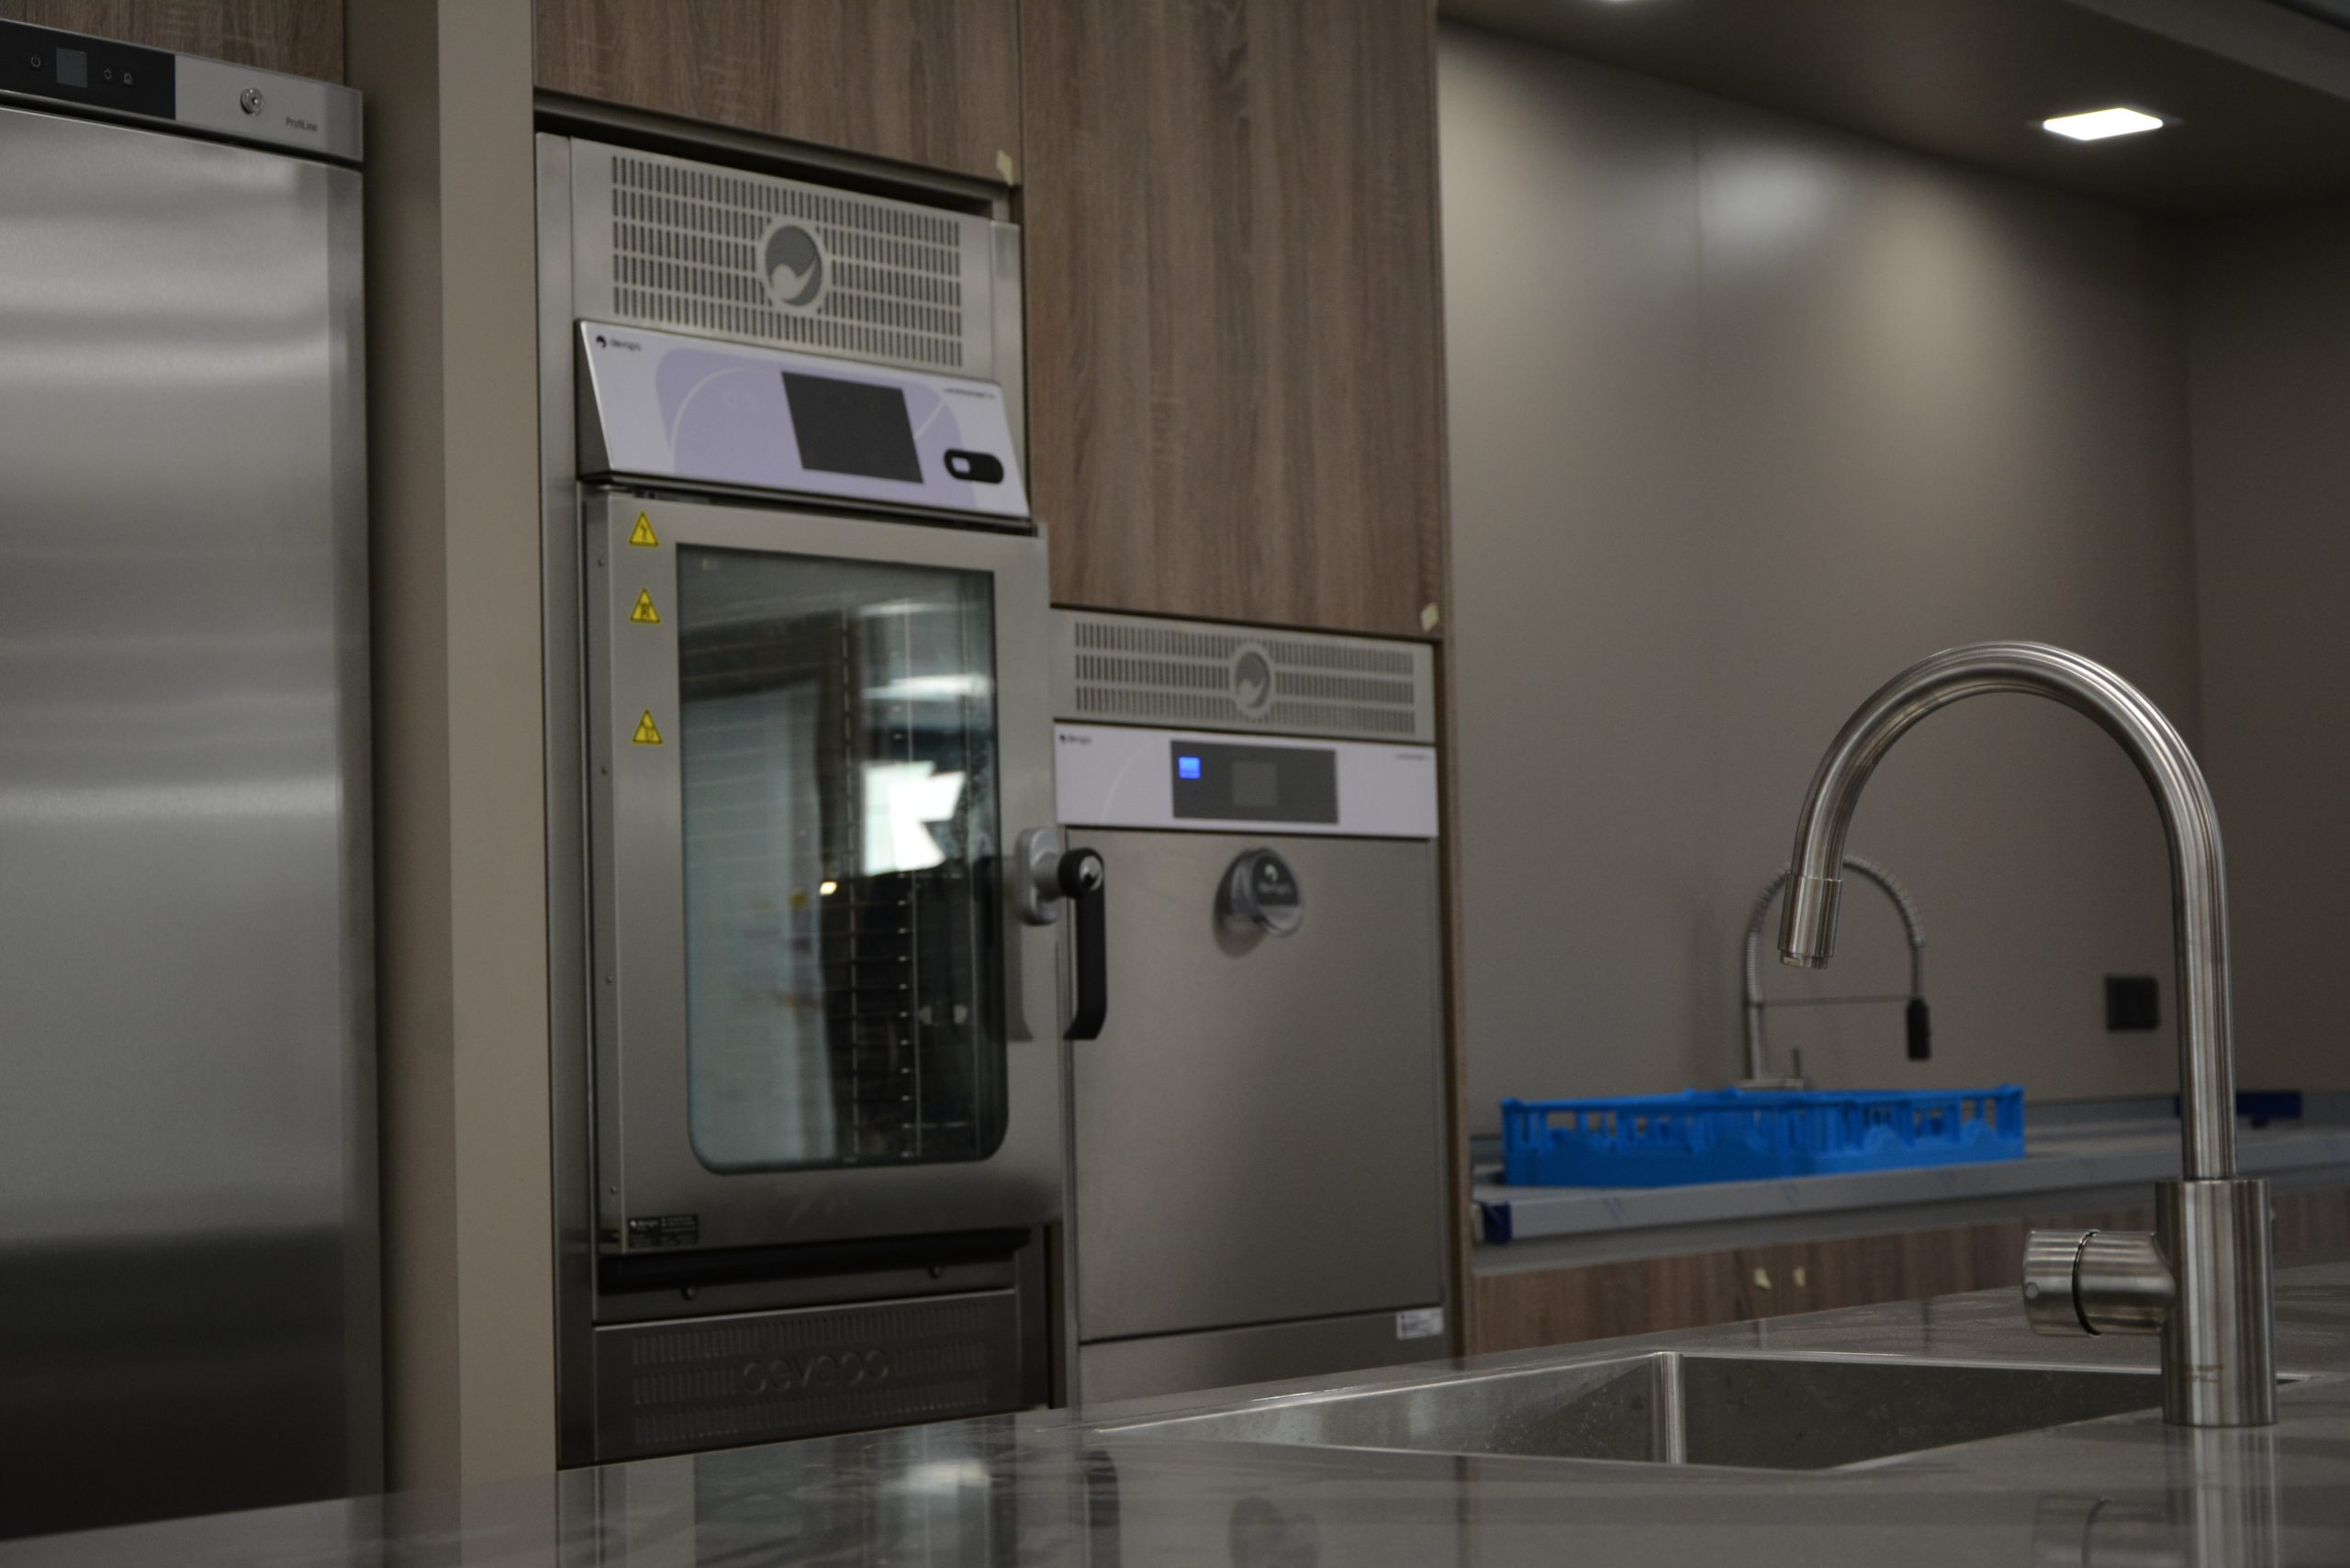 devapo careconceptline combi-steamer and dishwasher reference magnoliahof